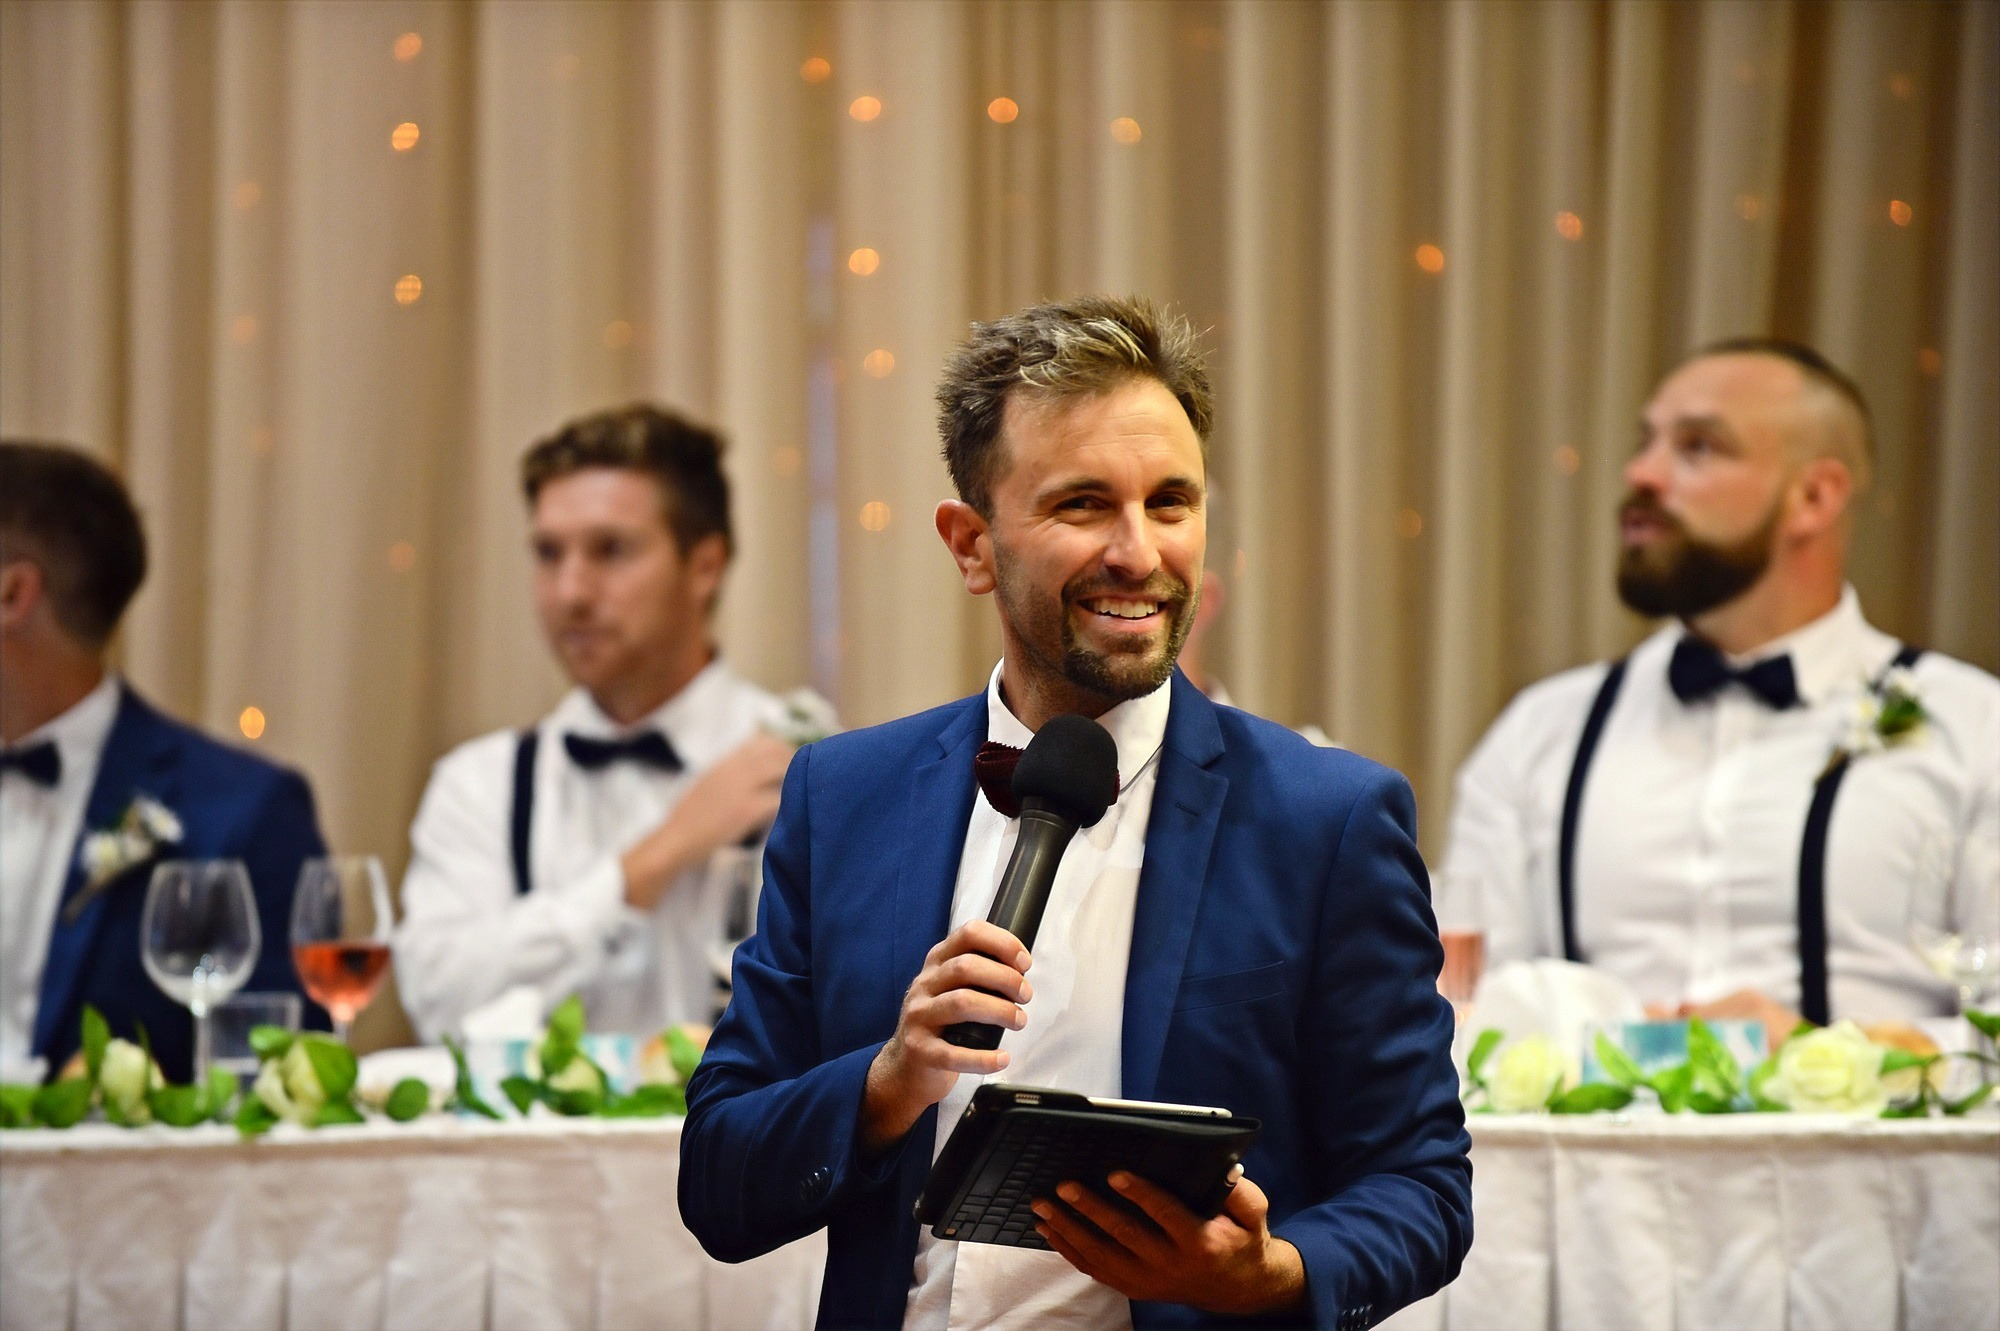 MC at wedding reception in Matakana, Auckland